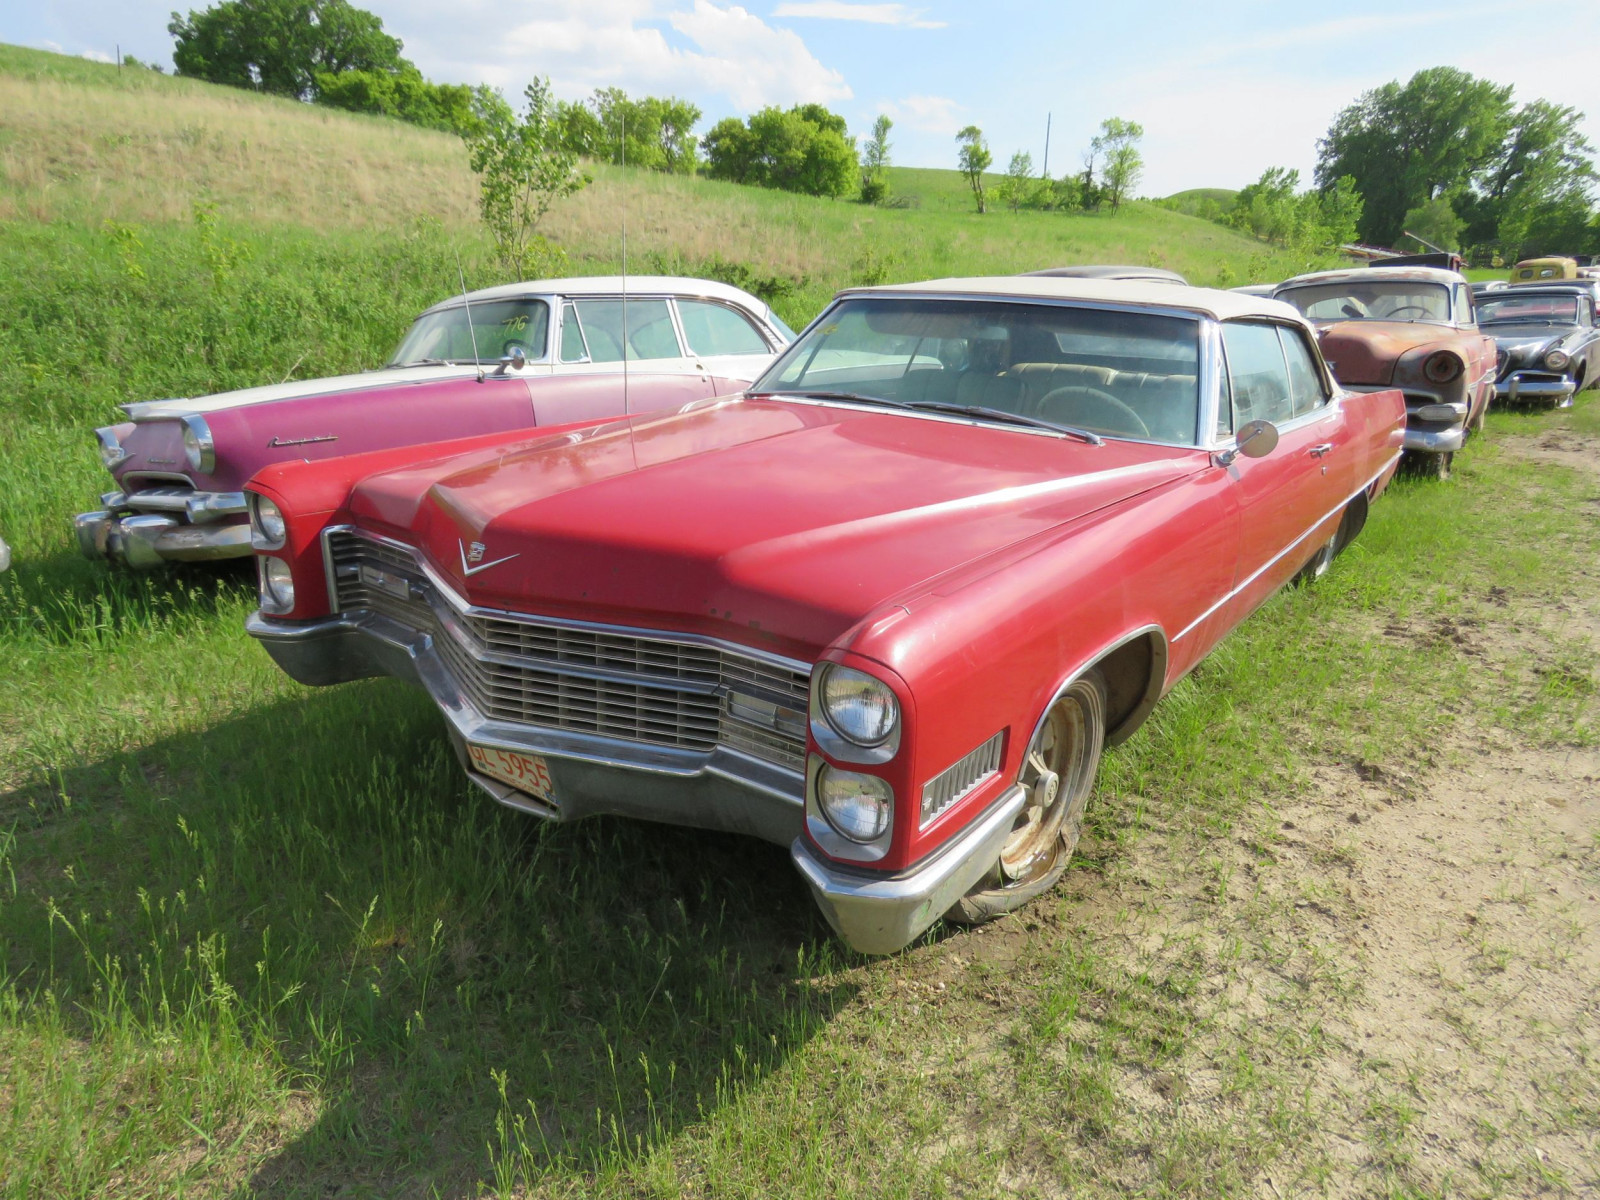 1961 Cadillac Deville Convertible F6122546 - Image 3